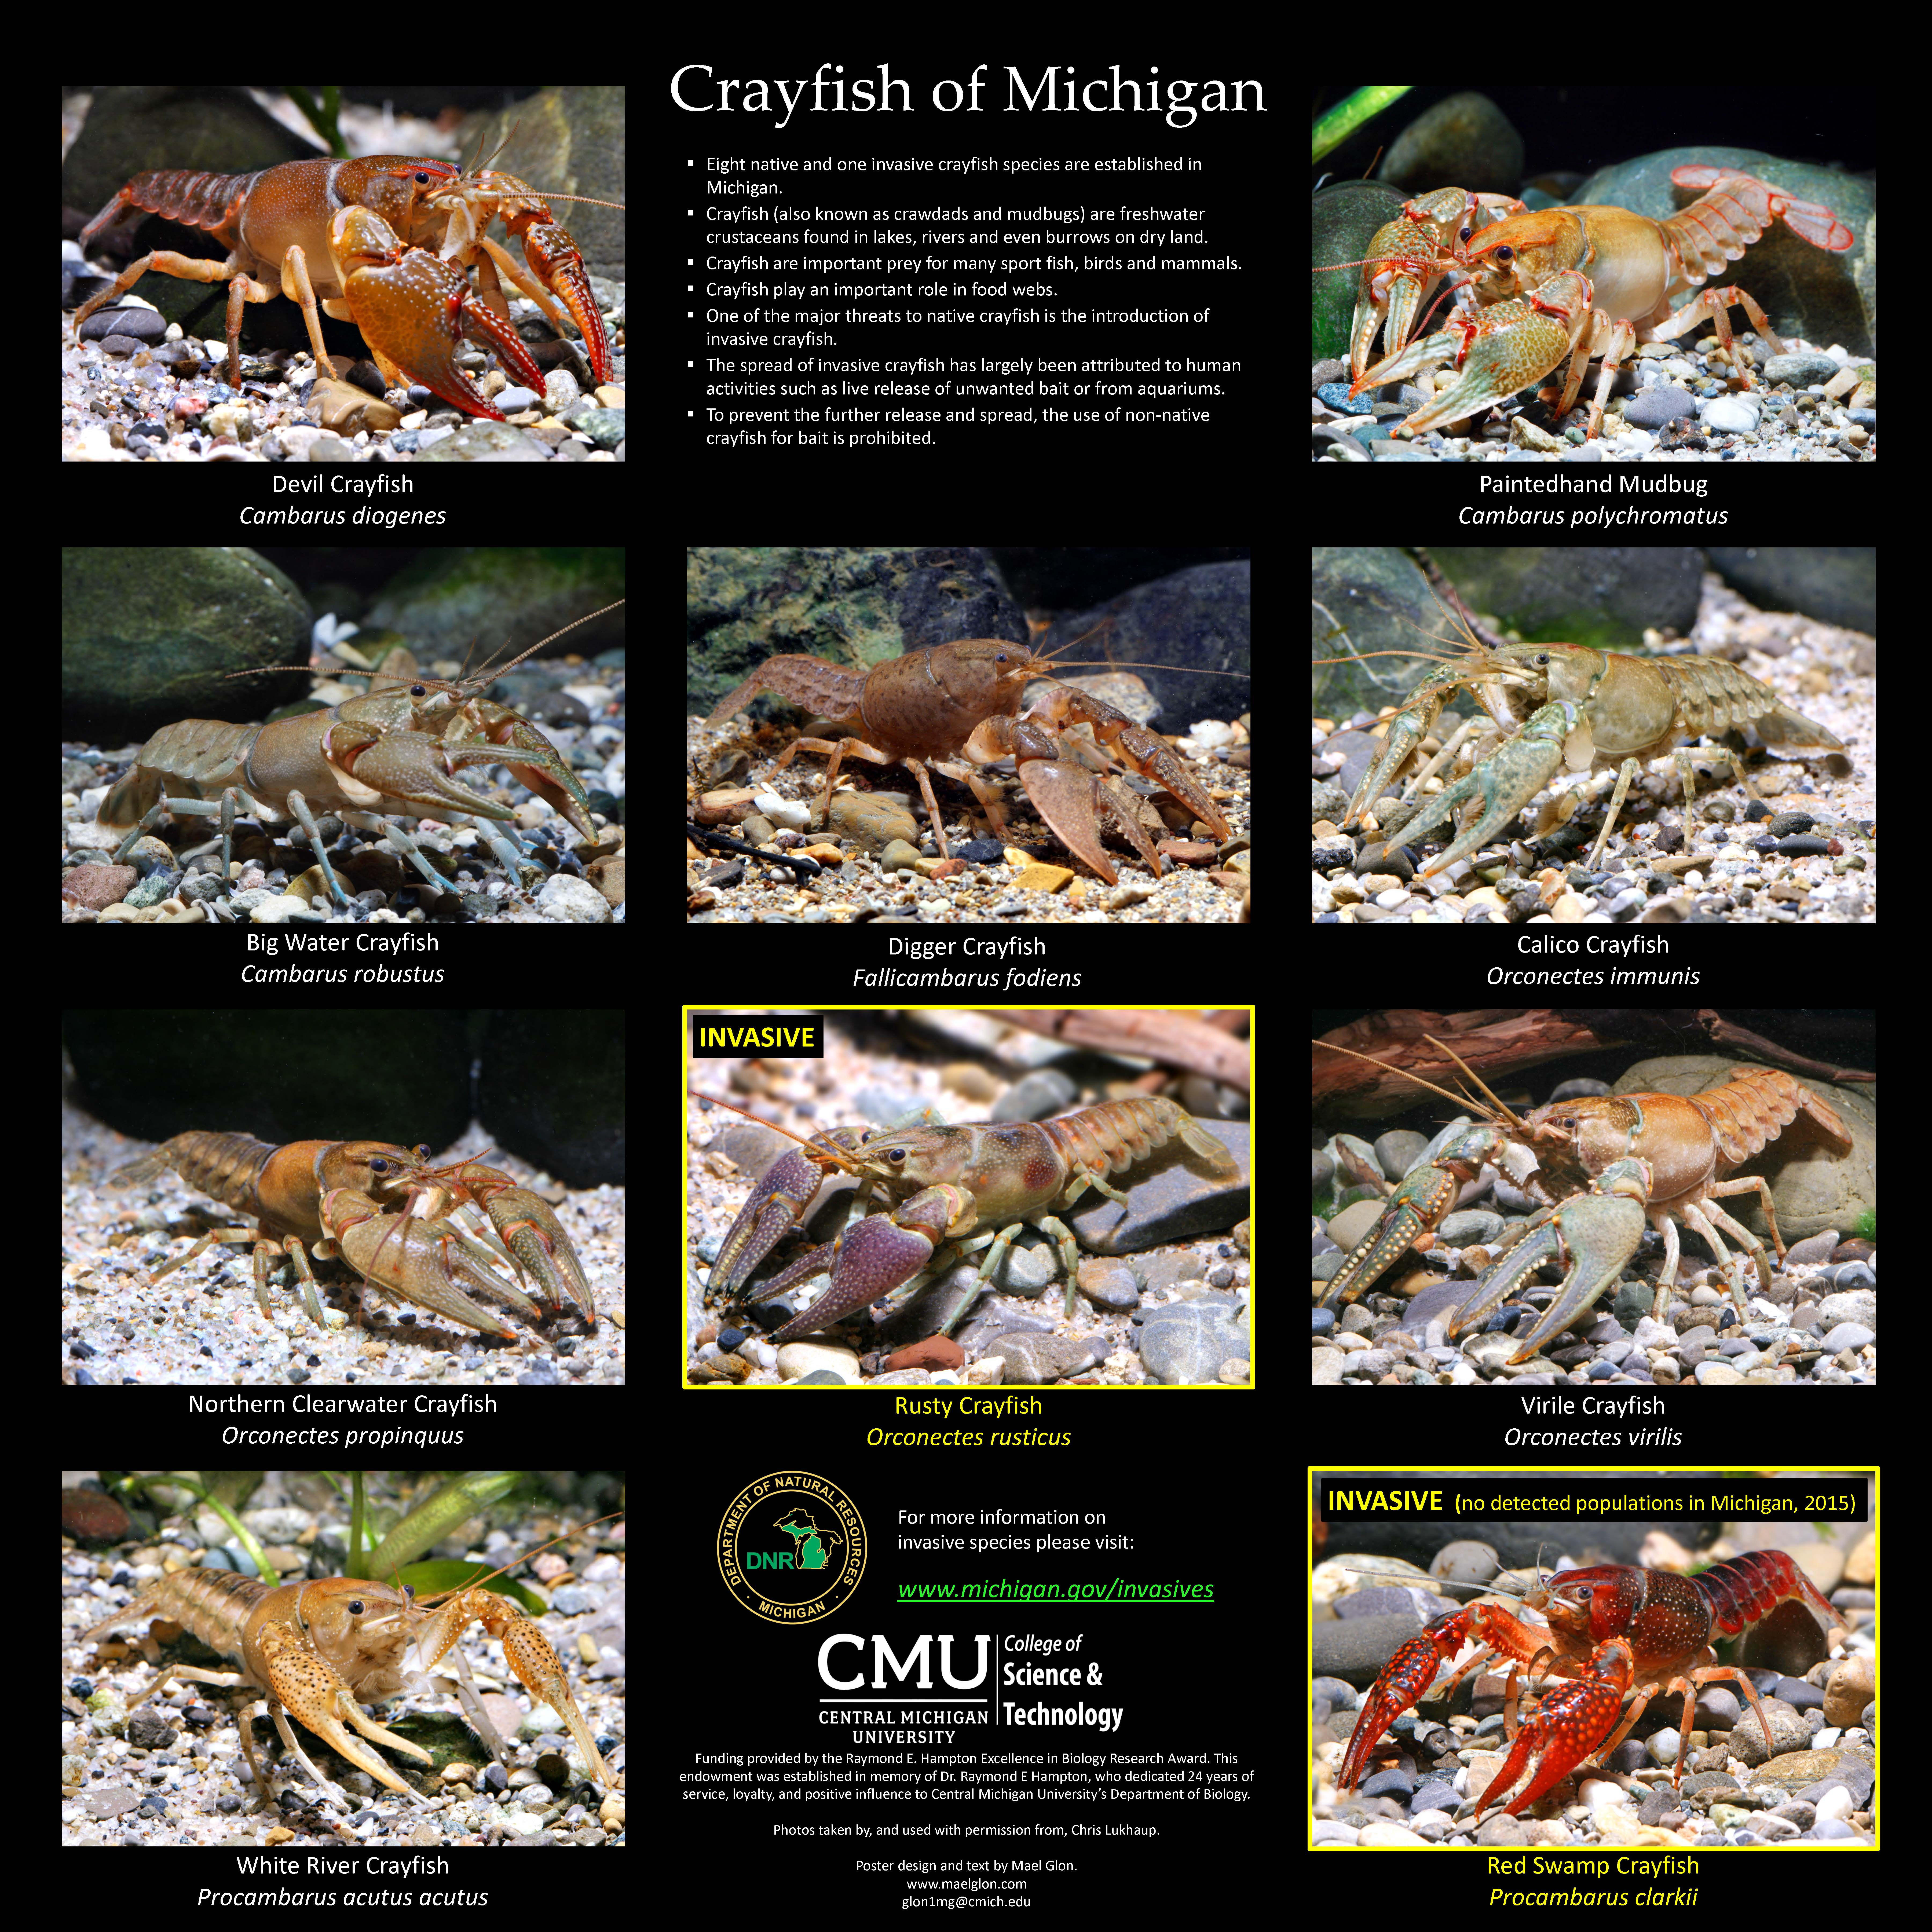 Michigan Department of Natural Resources Crayfish of Michigan Poster